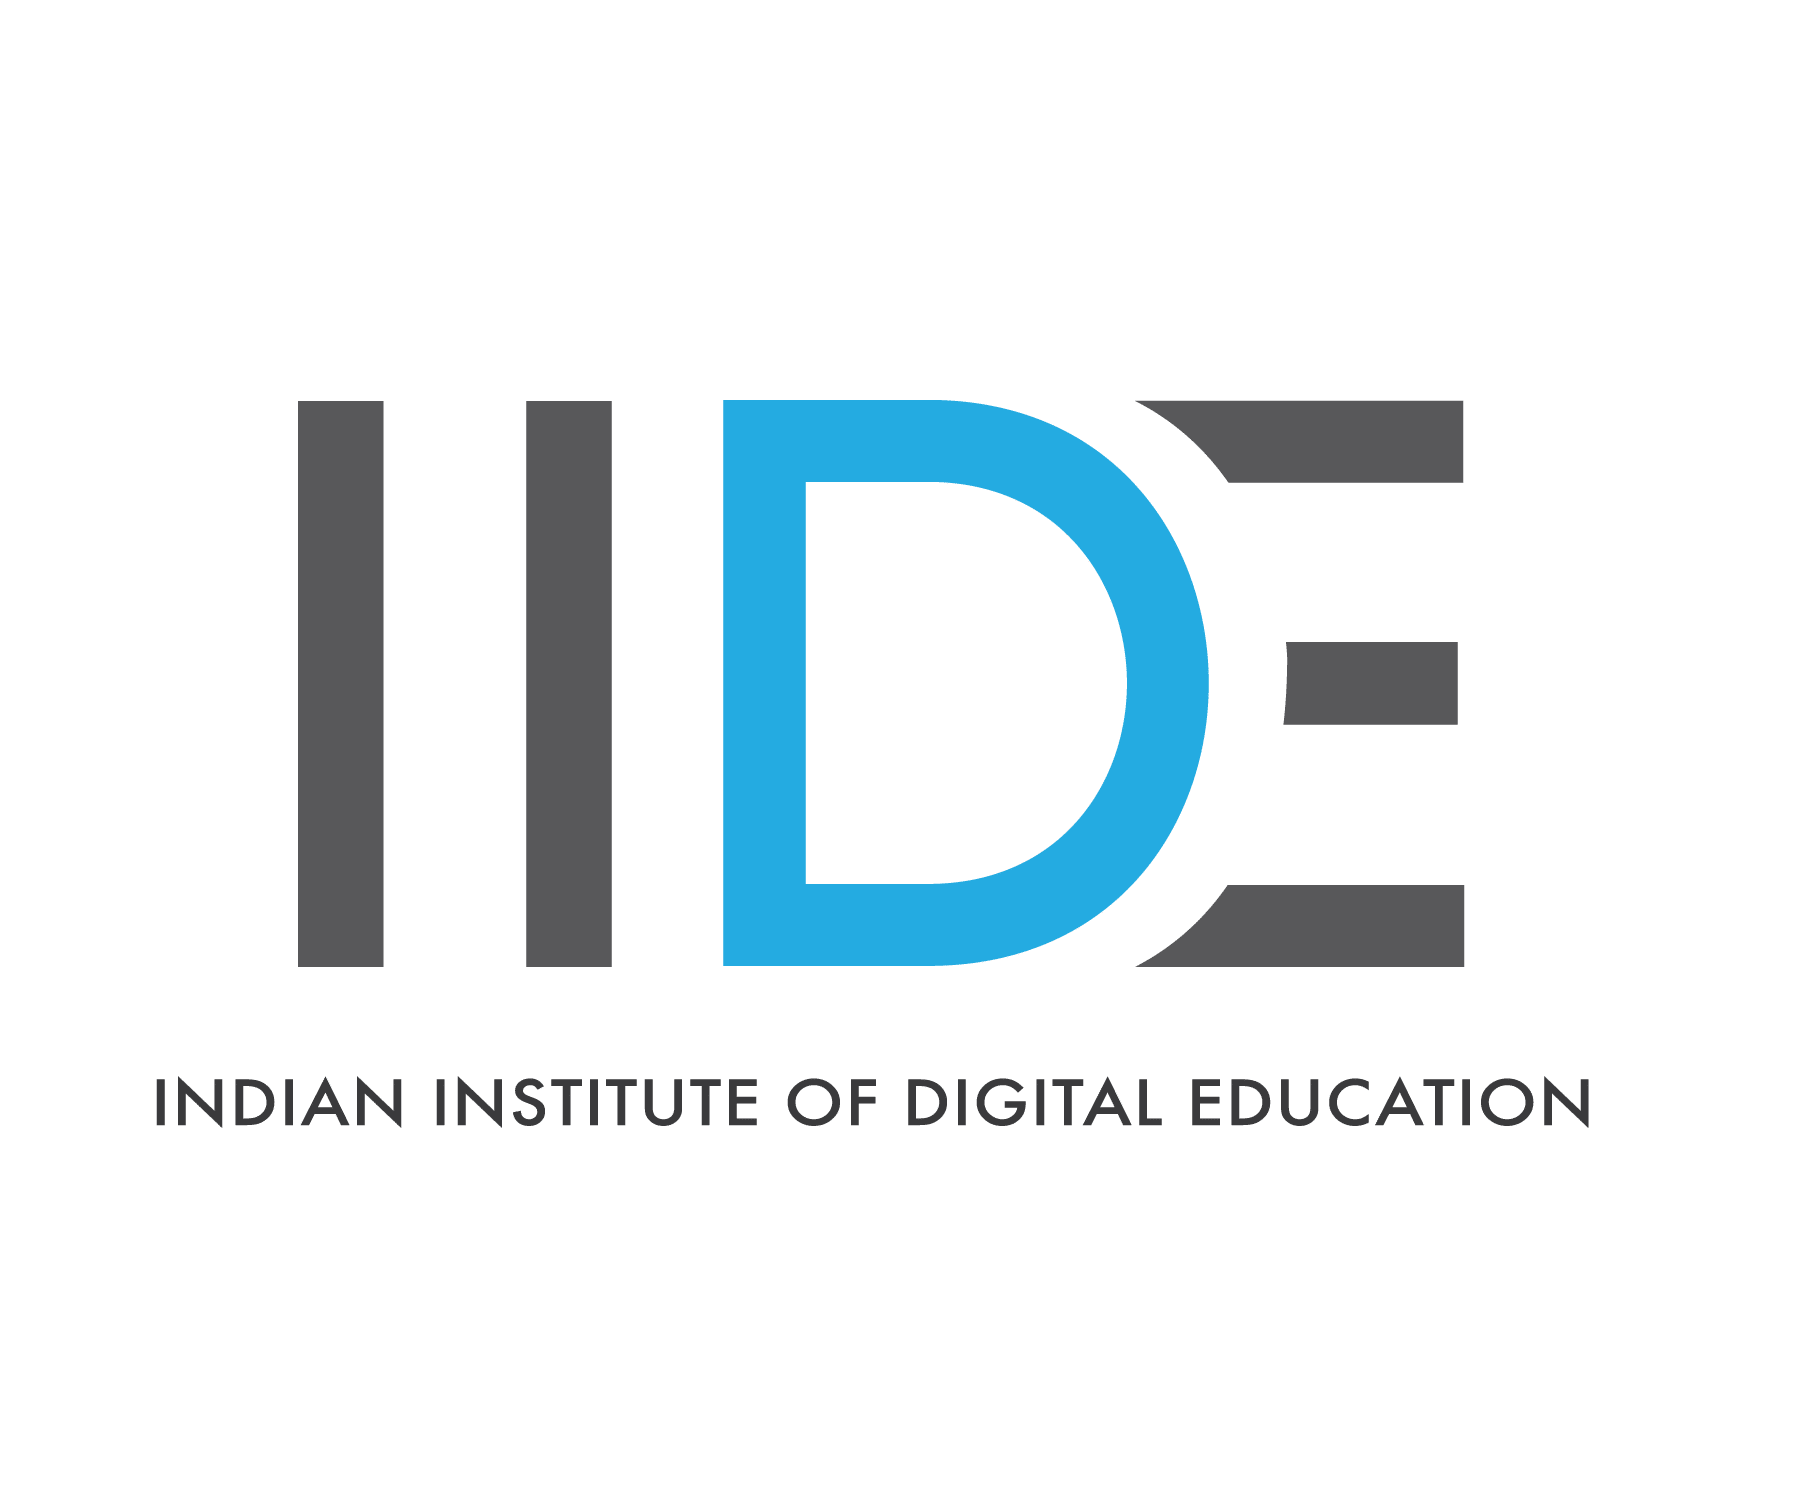 Indian Institute of Digital Education